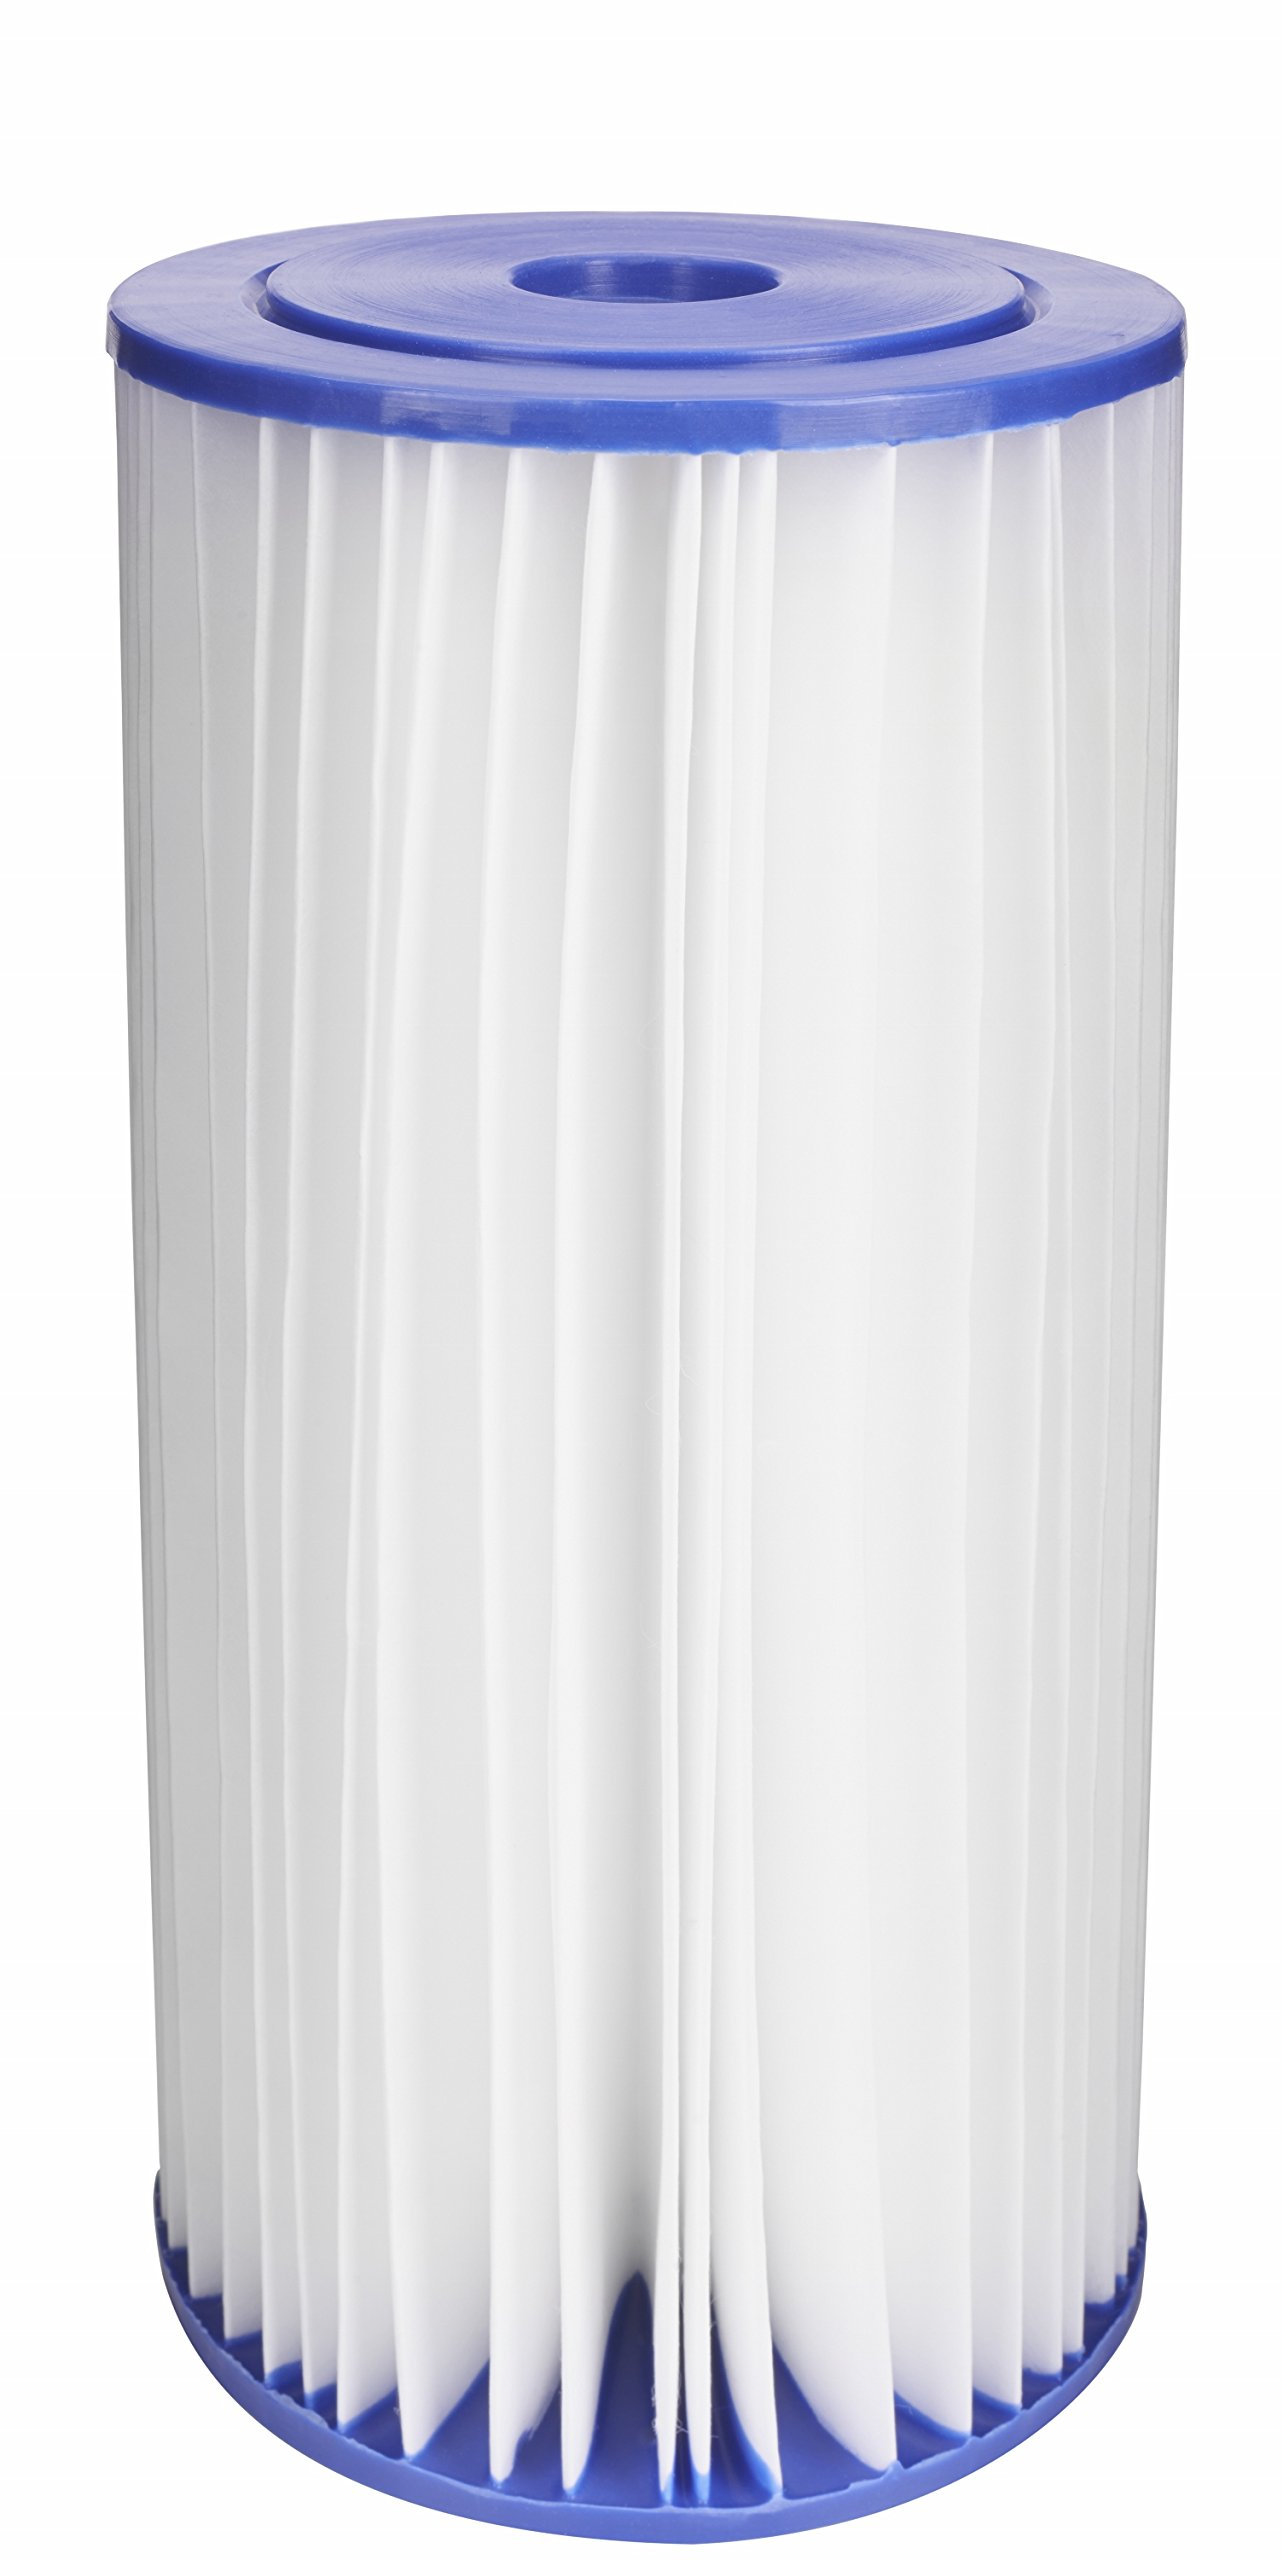 EcoPure EPW4P Pleated Whole Home Replacement Water Filter - Universal Fit - Fits Most Major Brand Systems